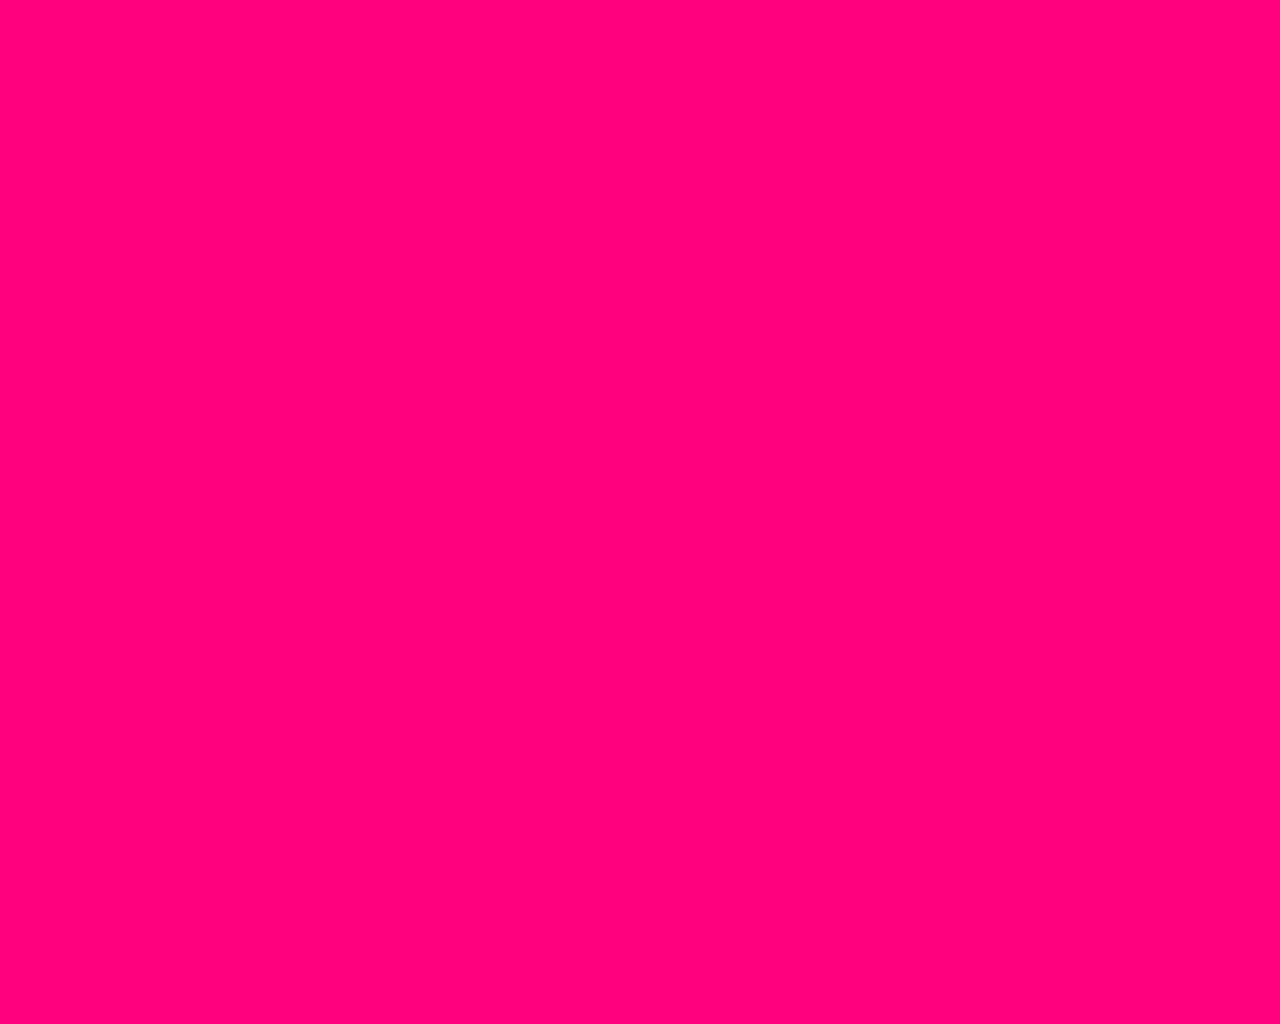 Color Pink Color Background Wallpapers Pink Backgrounds Hd Wallpapers 1280x1024